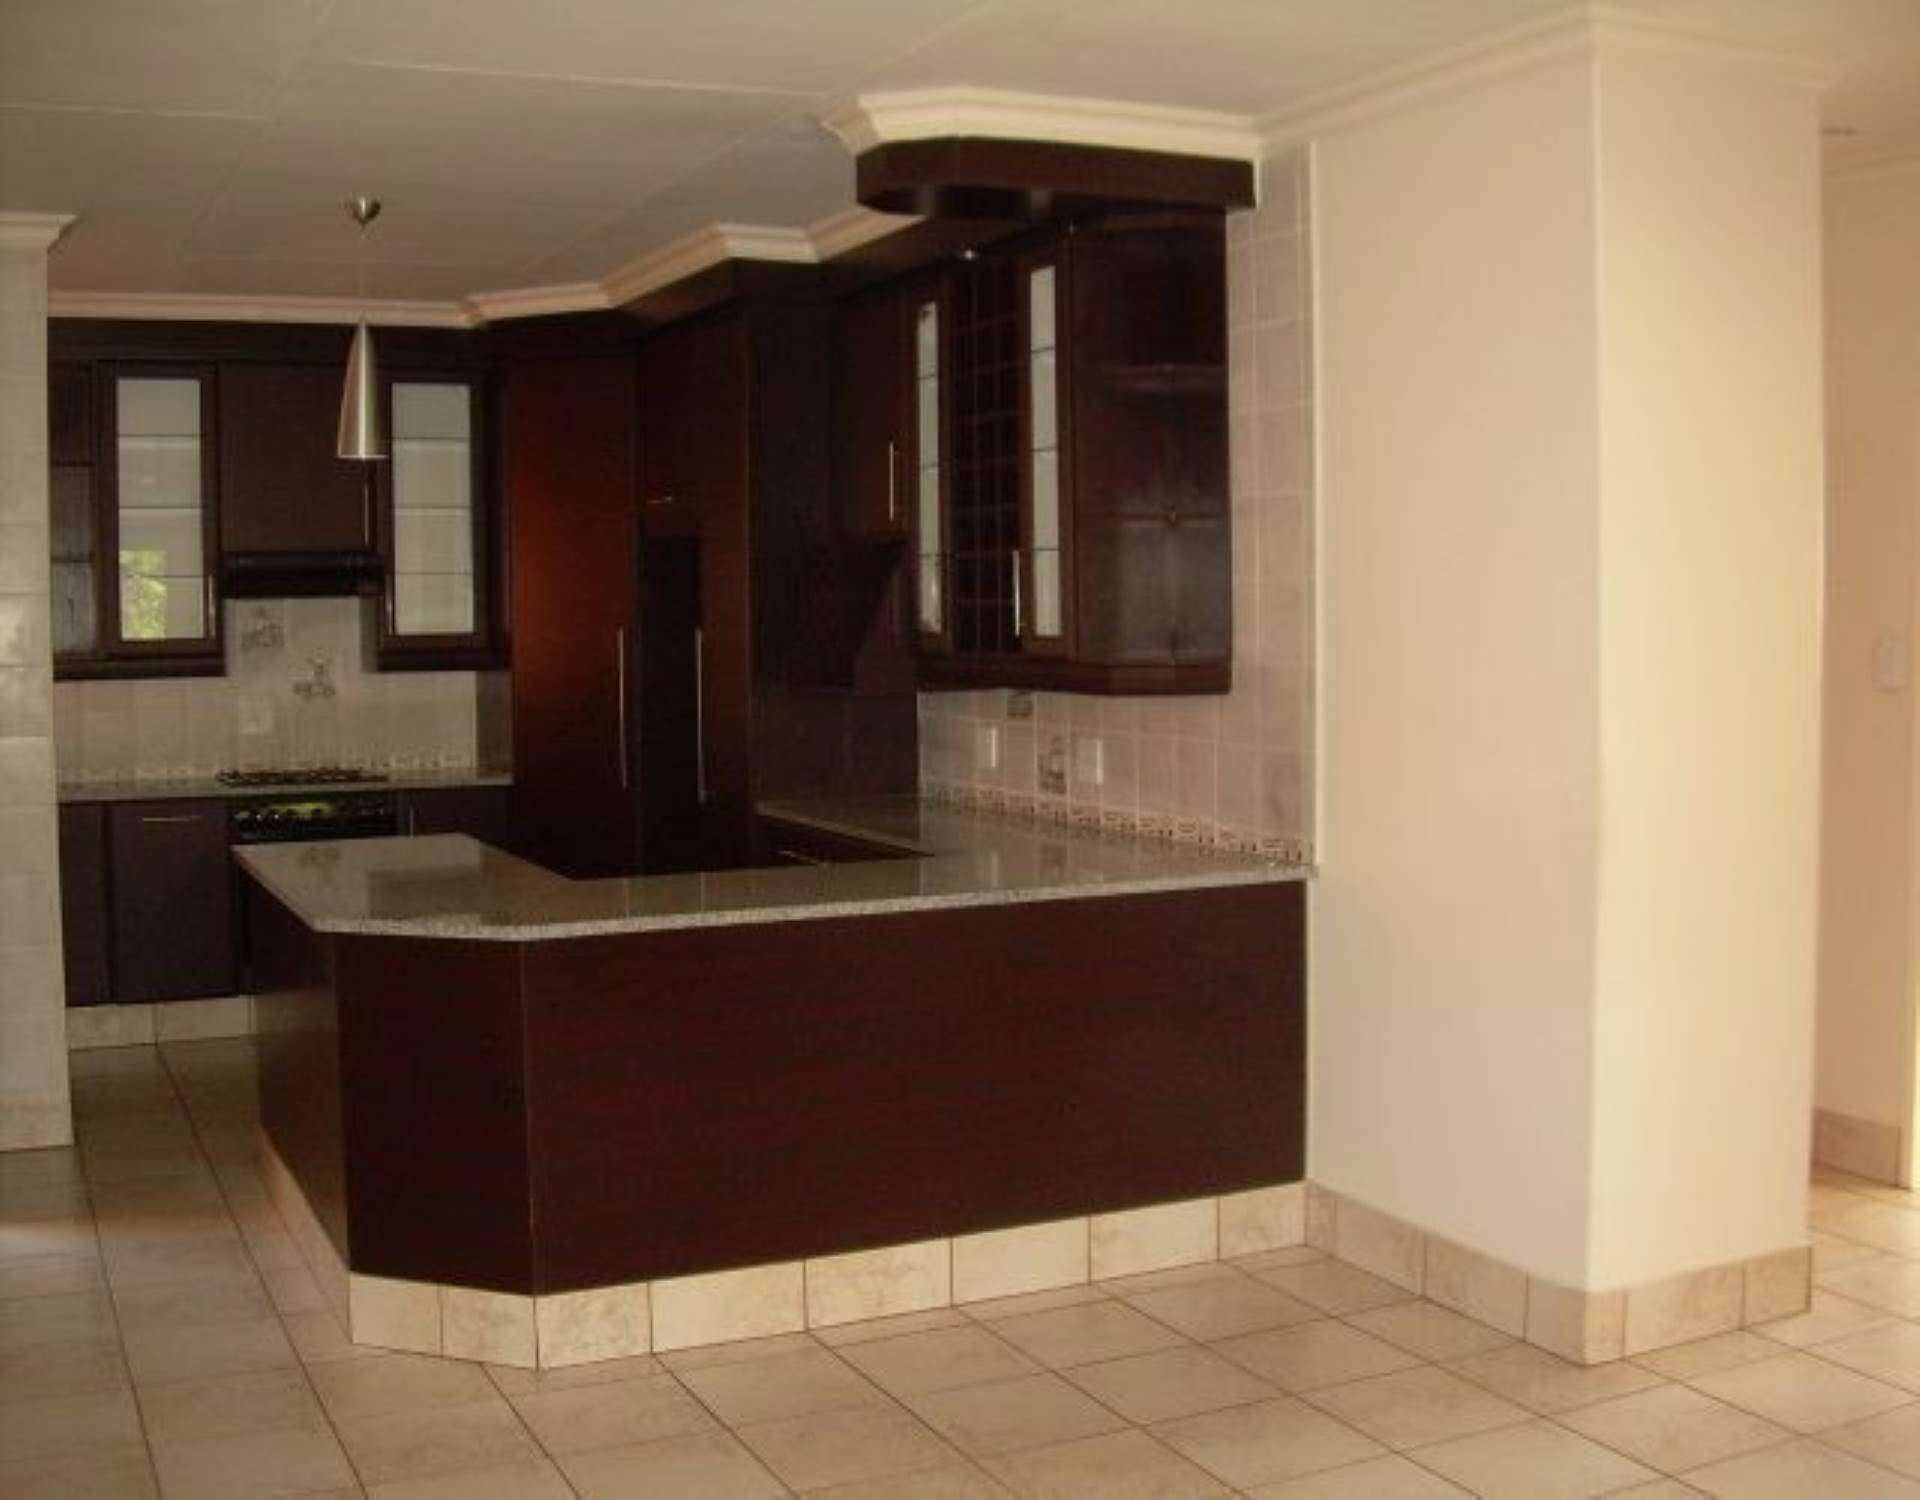 Property and Houses for sale in Gauteng - Page 1761, Flats, 2 Bedrooms - ZAR 480,000